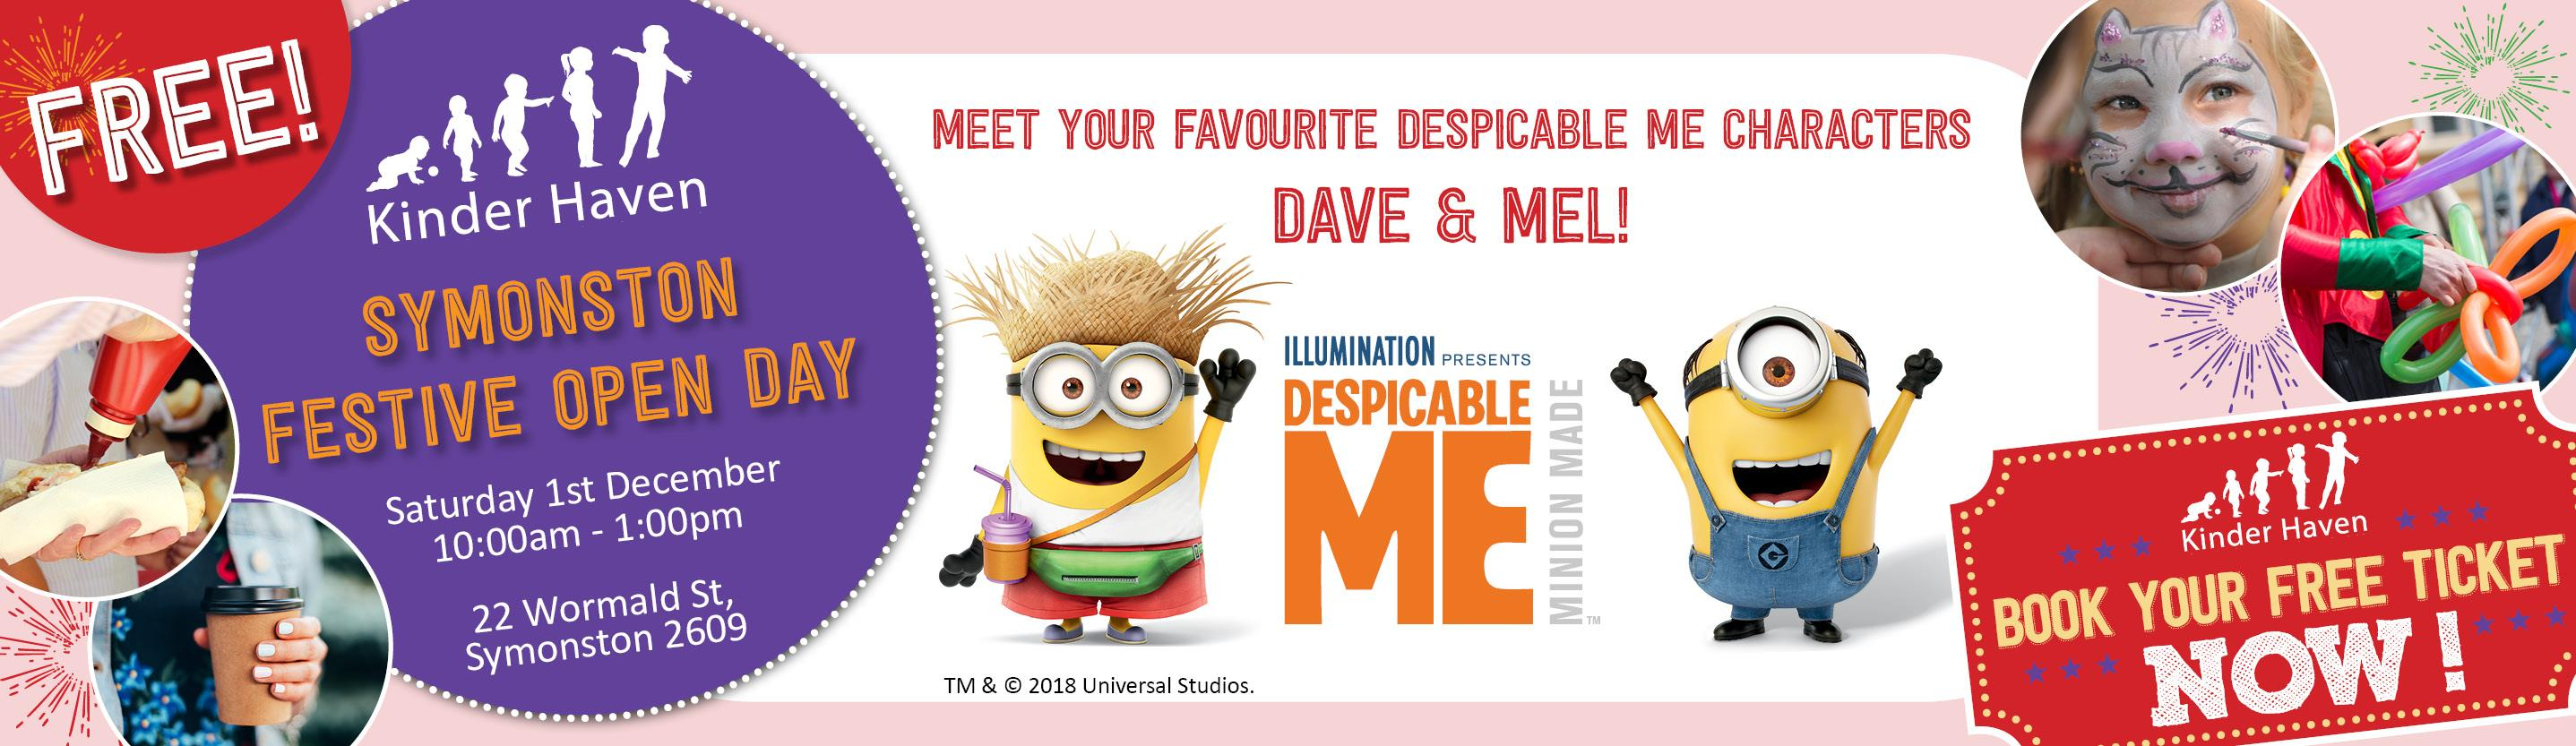 Meet Despicable Me characters Dave & Mel at Kinder Haven Symonston's festive Open Day!